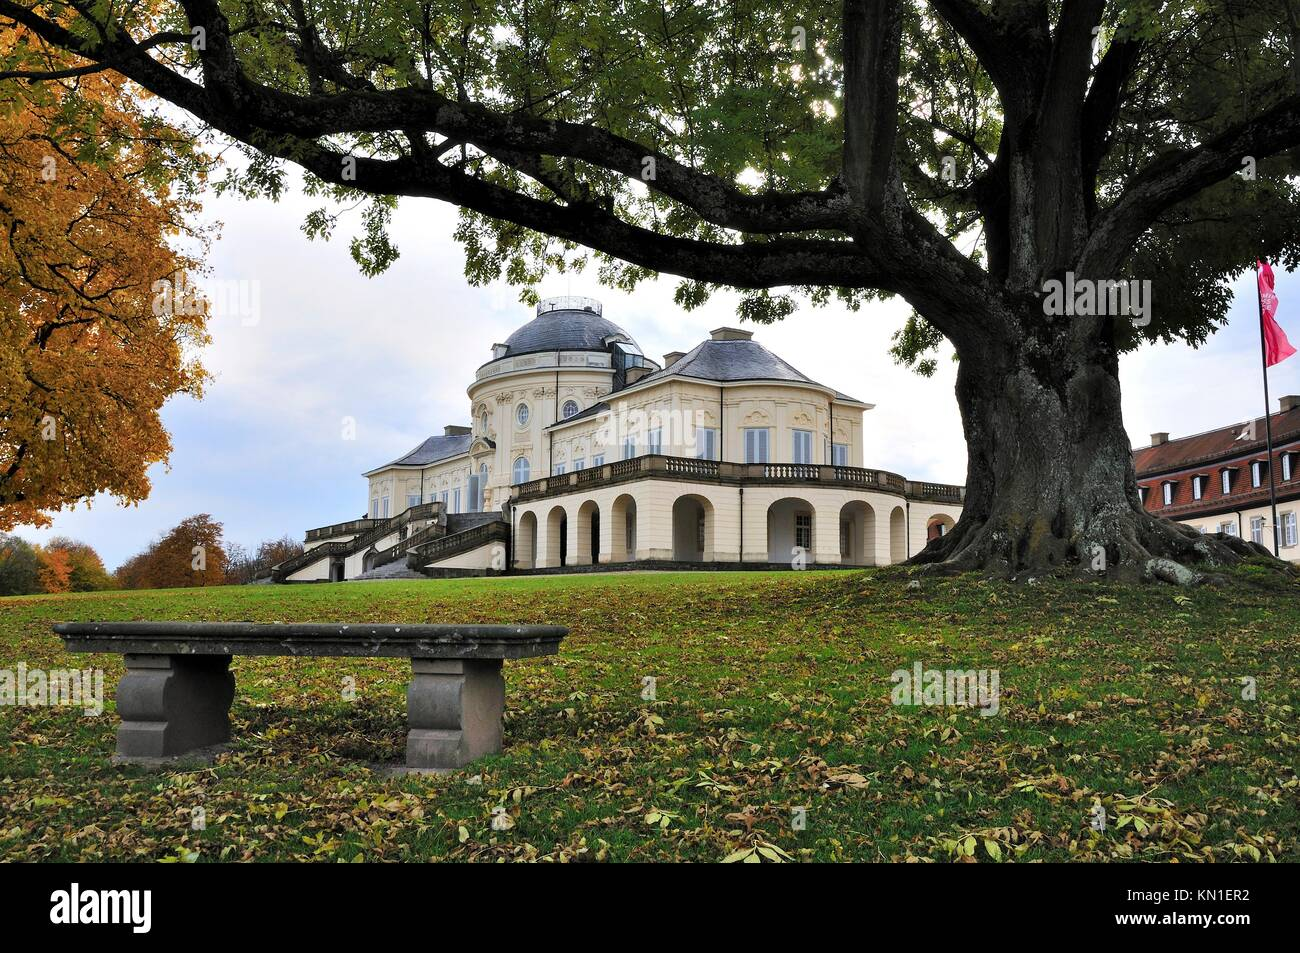 autumnal foresight of the famous castle located in a park in surroundings of the city, to the fore a bench and centuries Stock Photo